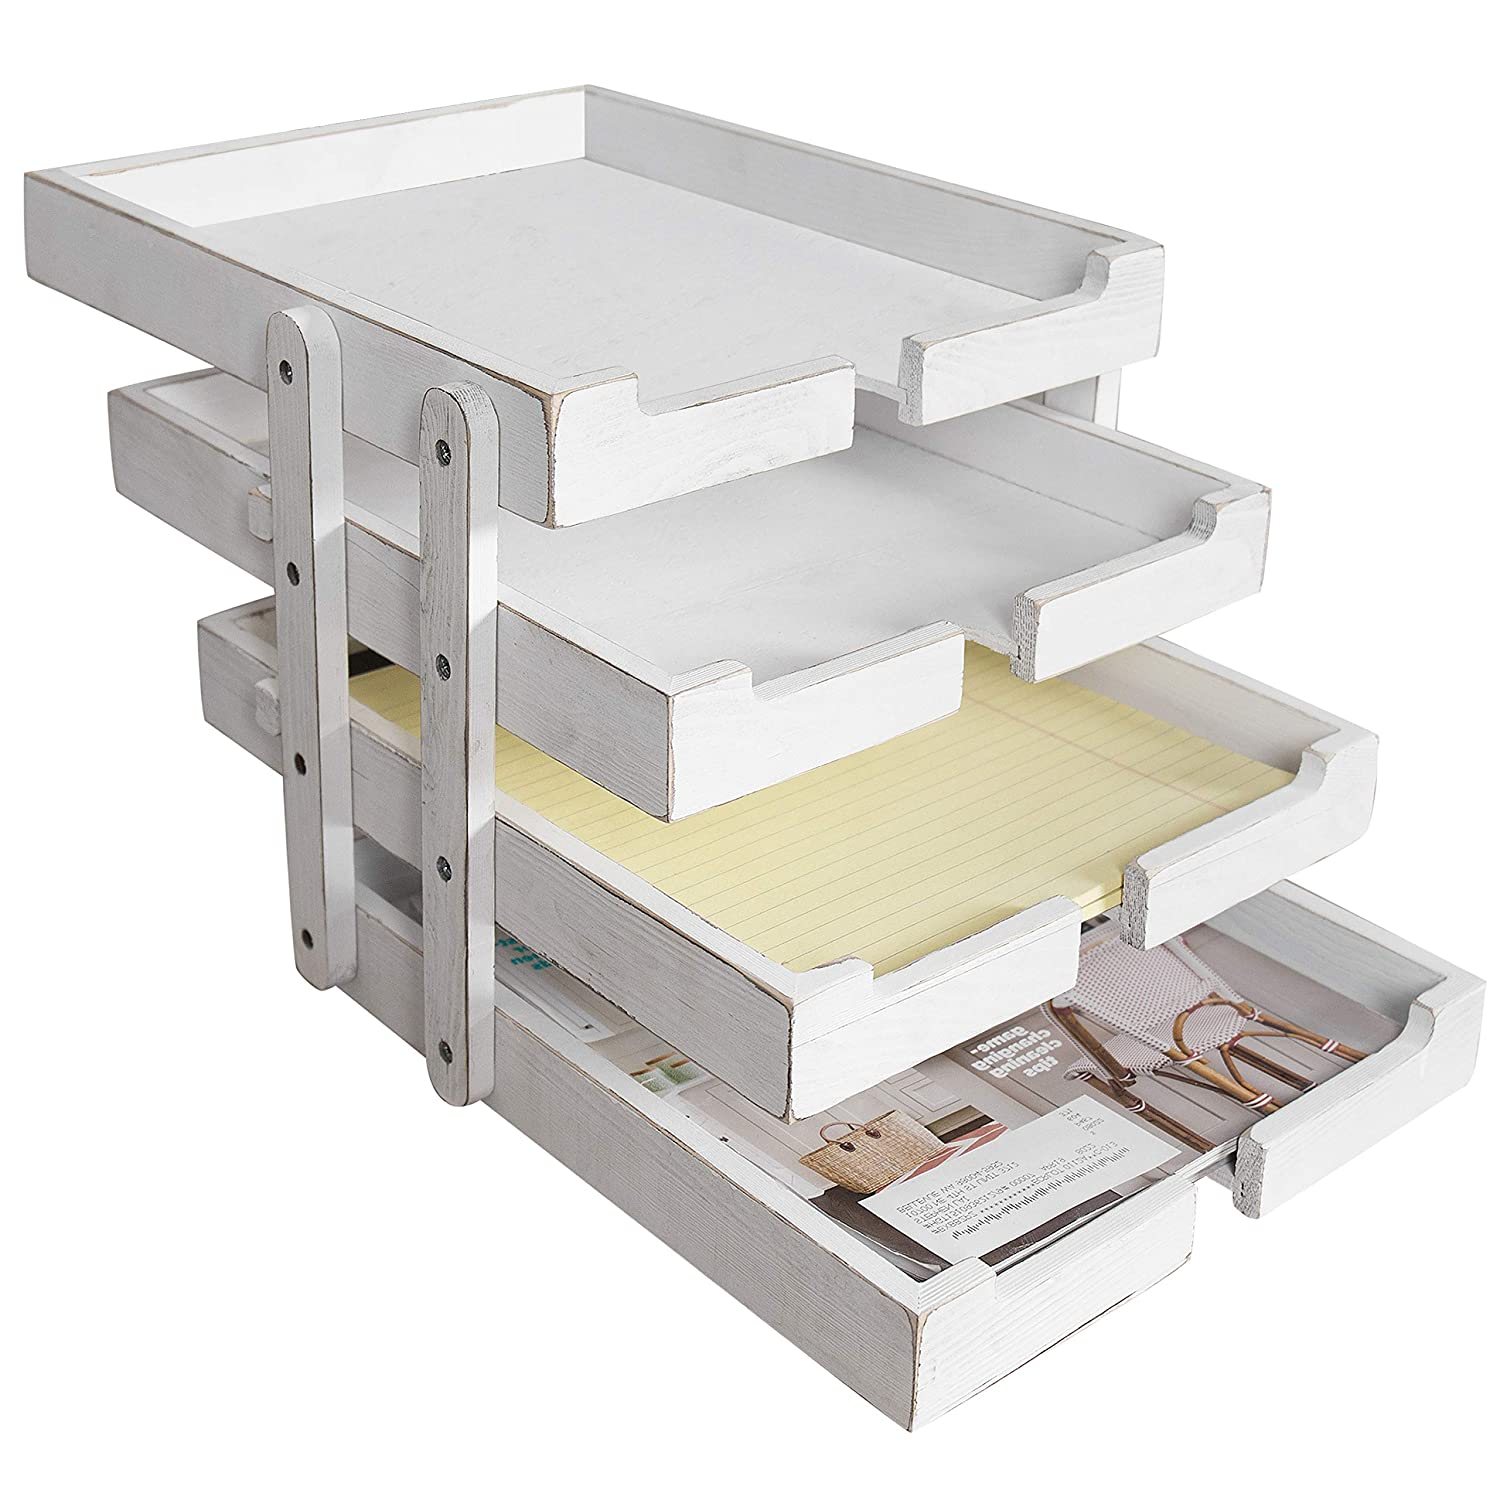 MyGift 4-Tier Collapsible & Expandable Vintage White Wood Document Tray